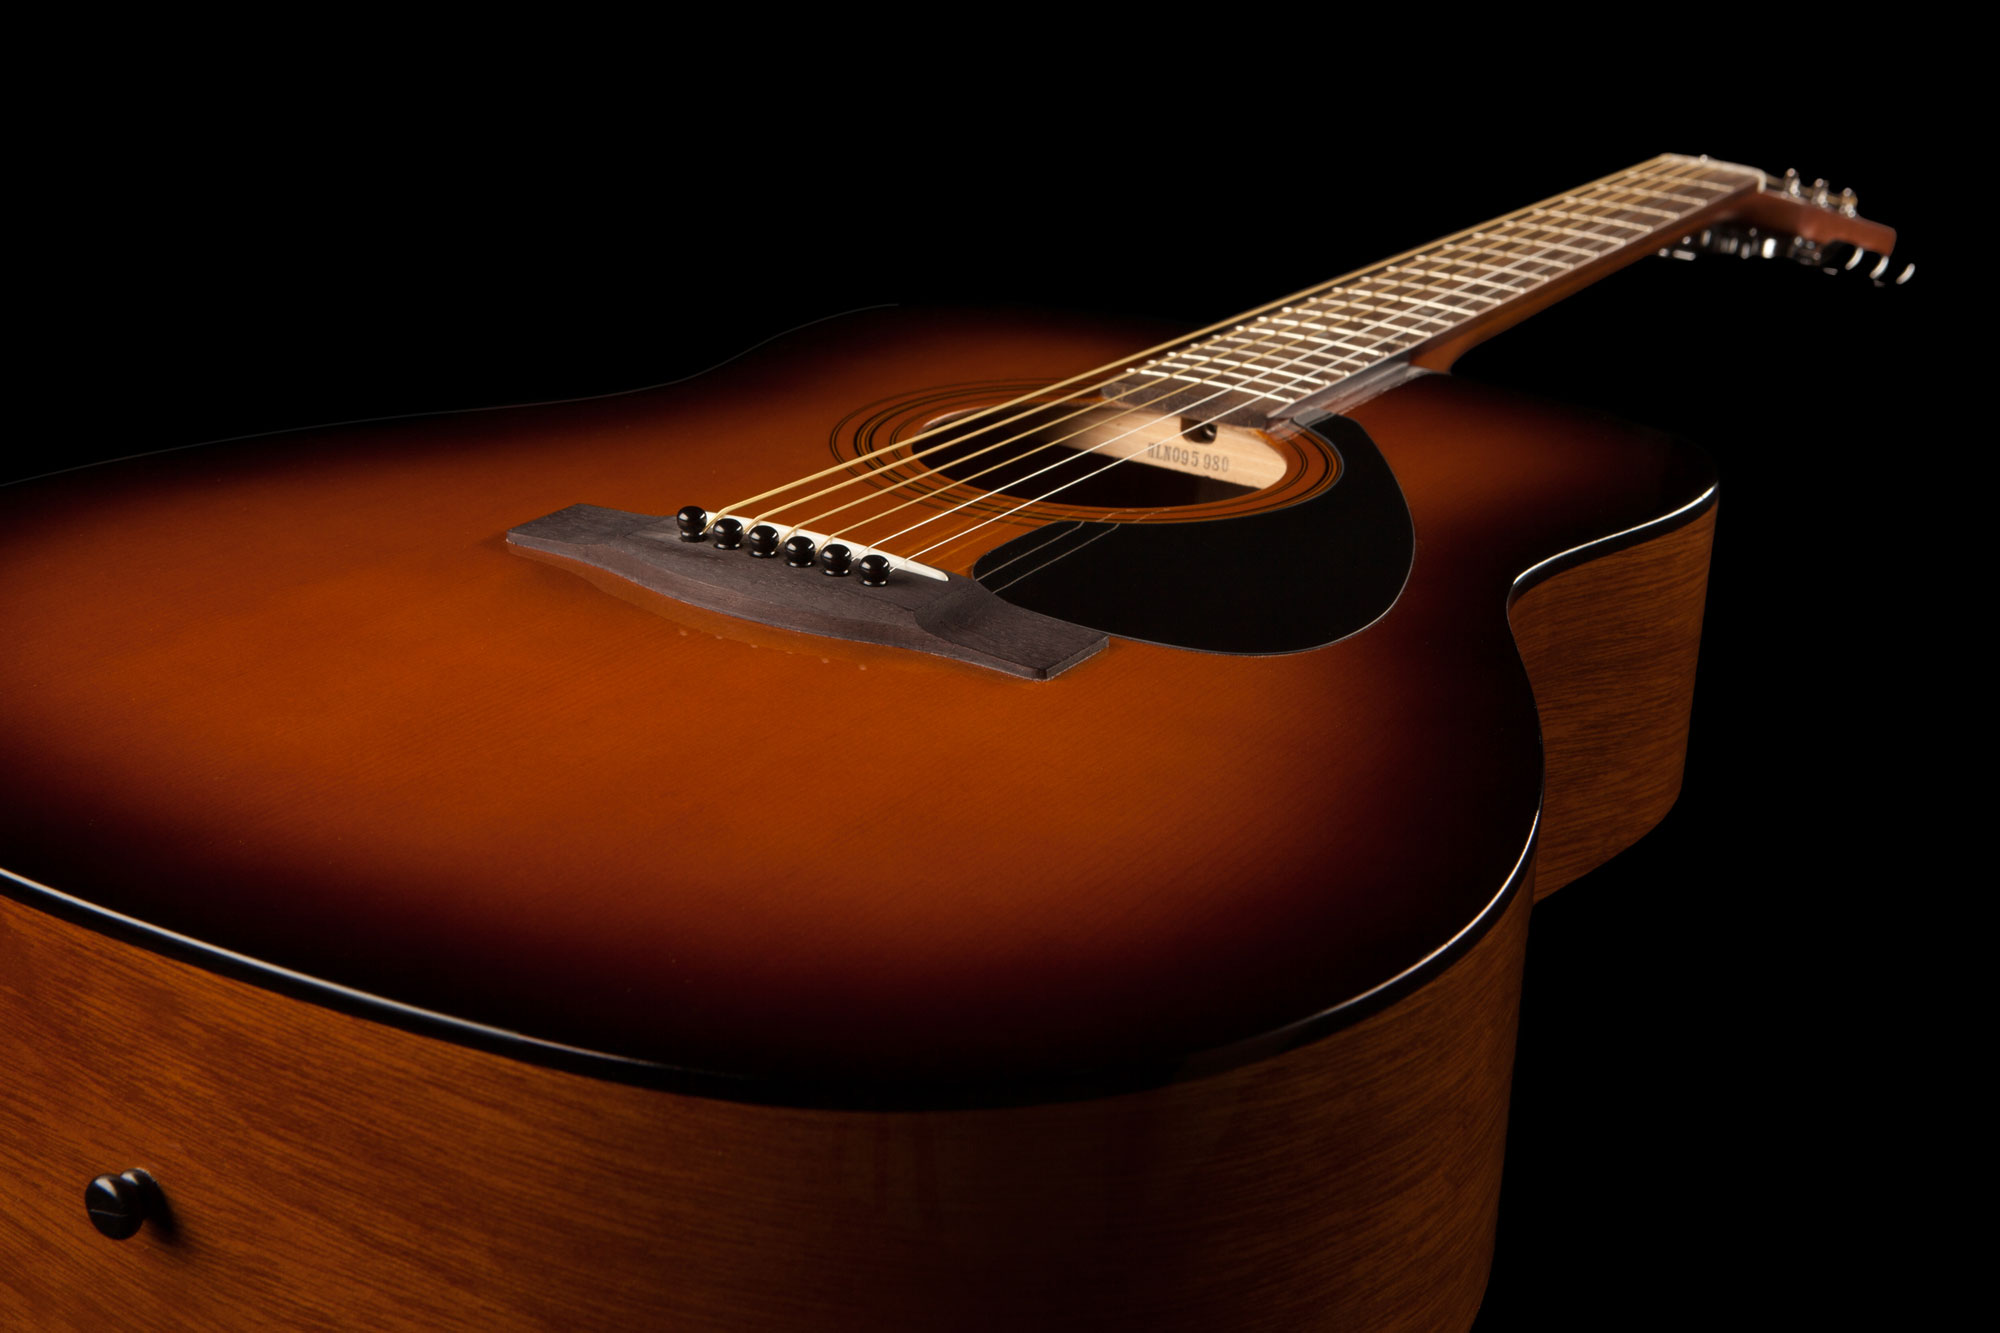 Yamaha F310 Acoustic Guitar In Natural Or Tobacco Brown